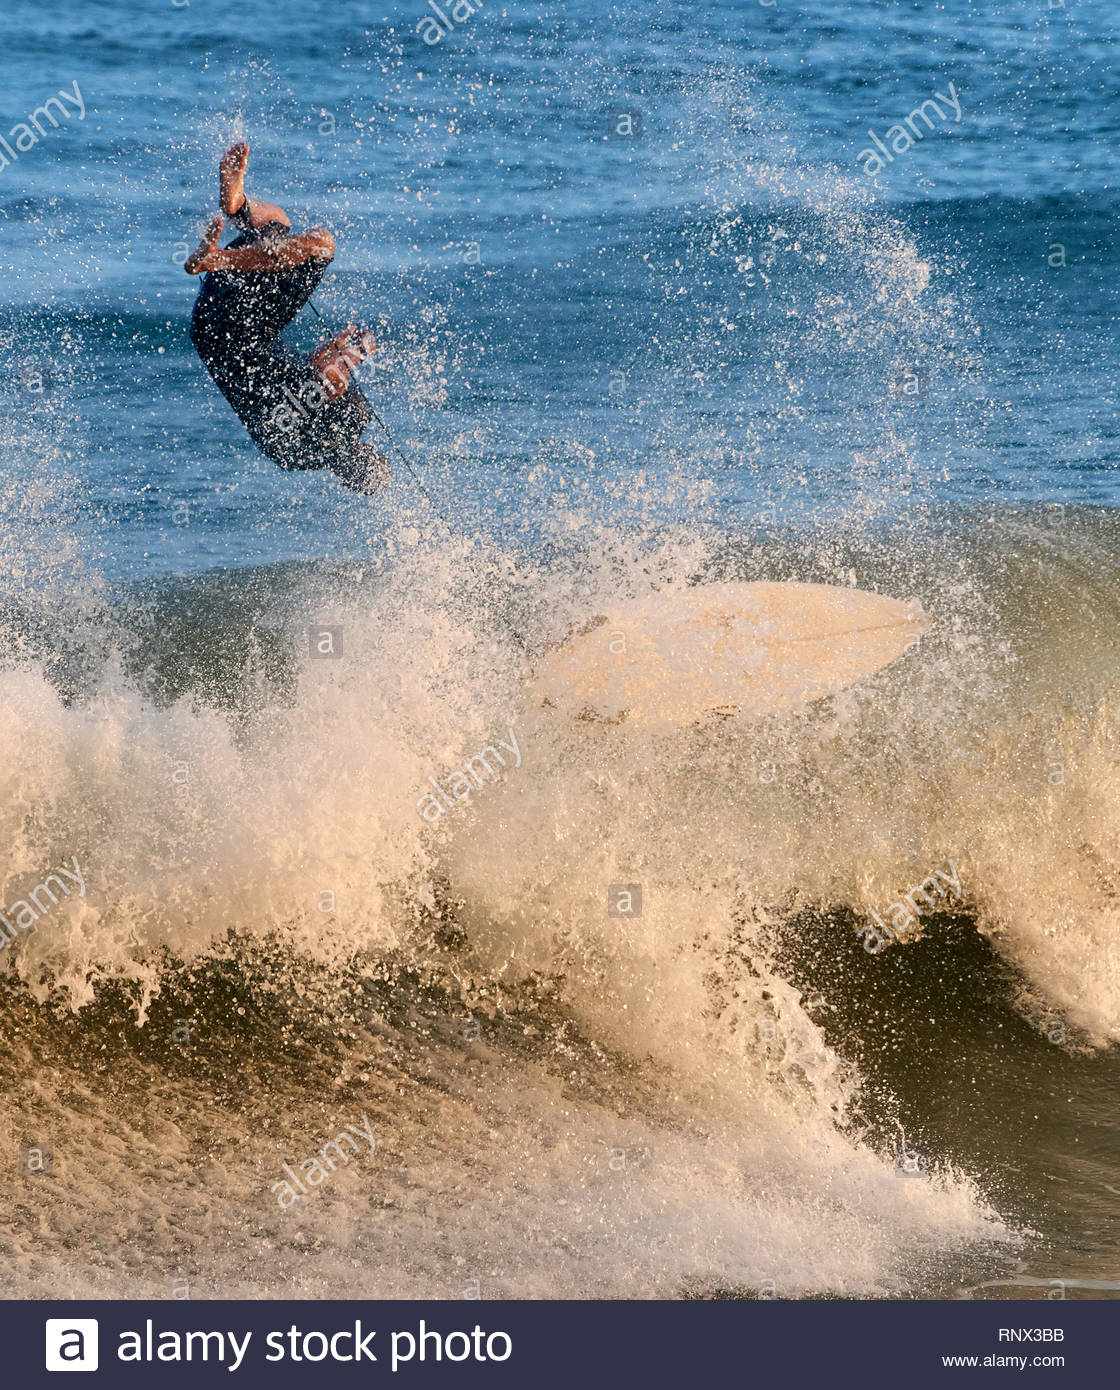 A male surfer, upside-down in the air, as he playfully ejects himself off a closing out wave; at Turners Beach, Yamba, NSW, Australia. - Stock Image